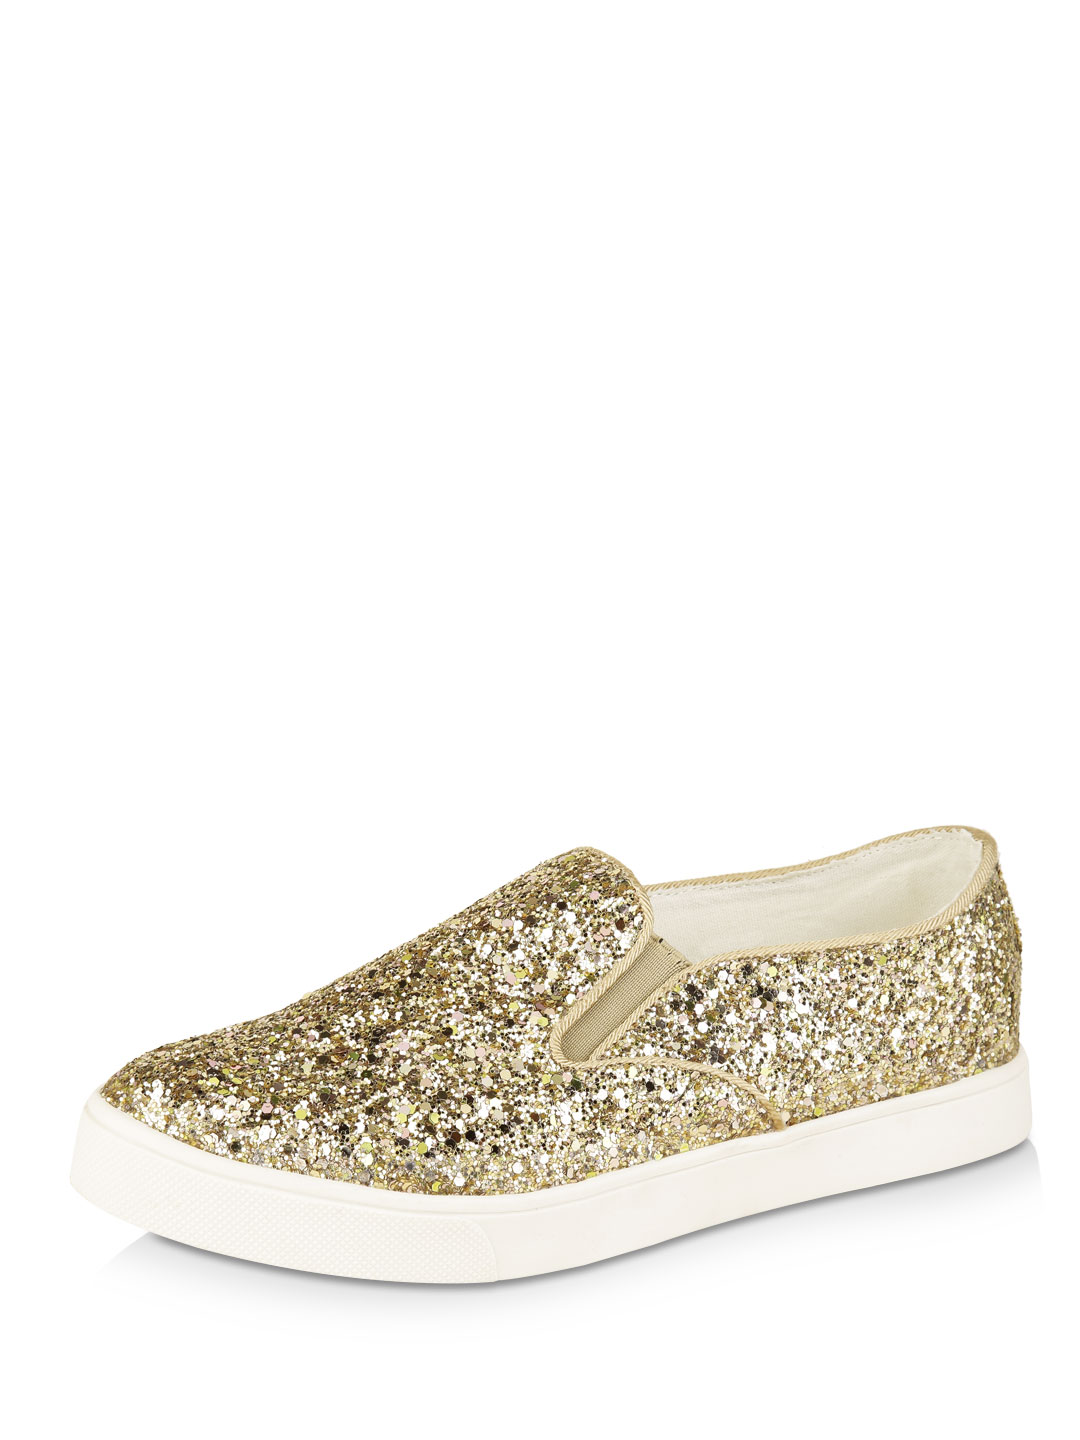 New Look Gold All-over Glitter Slip On Shoes 1